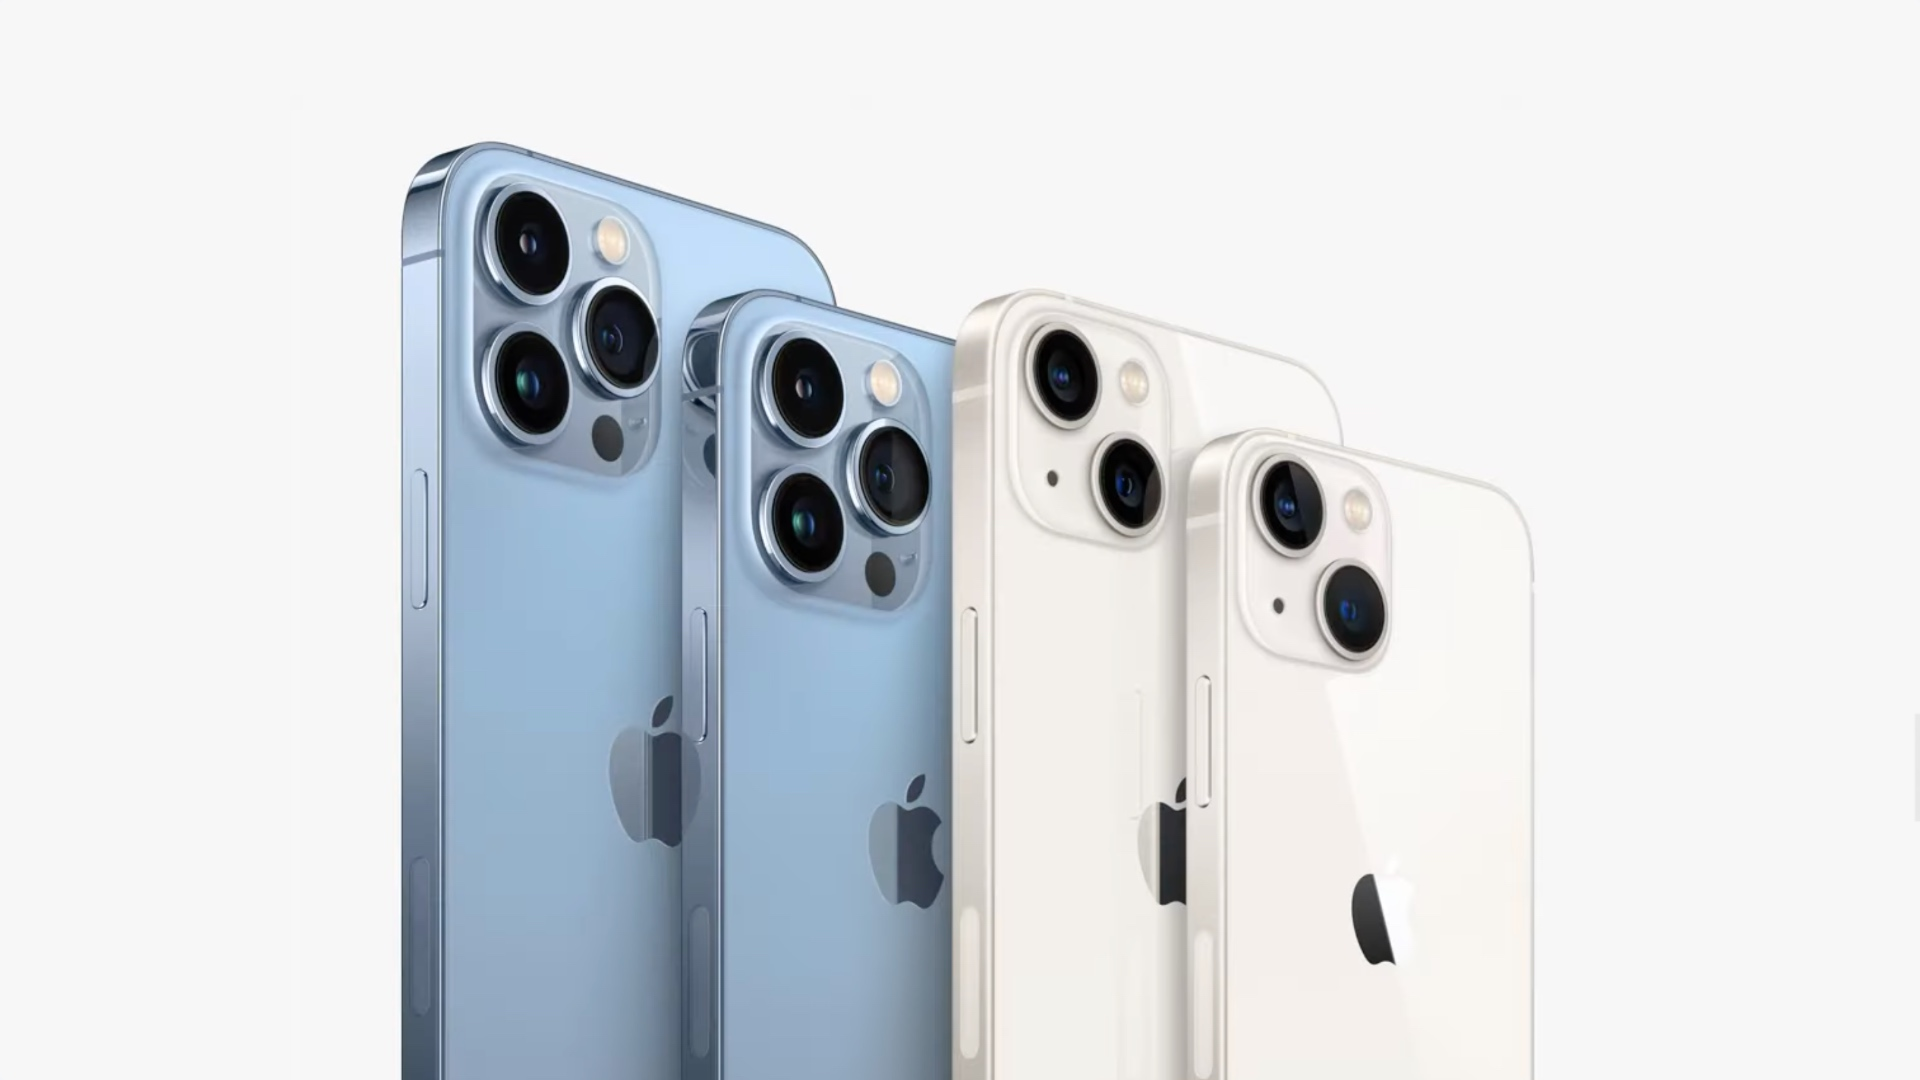 All iPhone 13 models